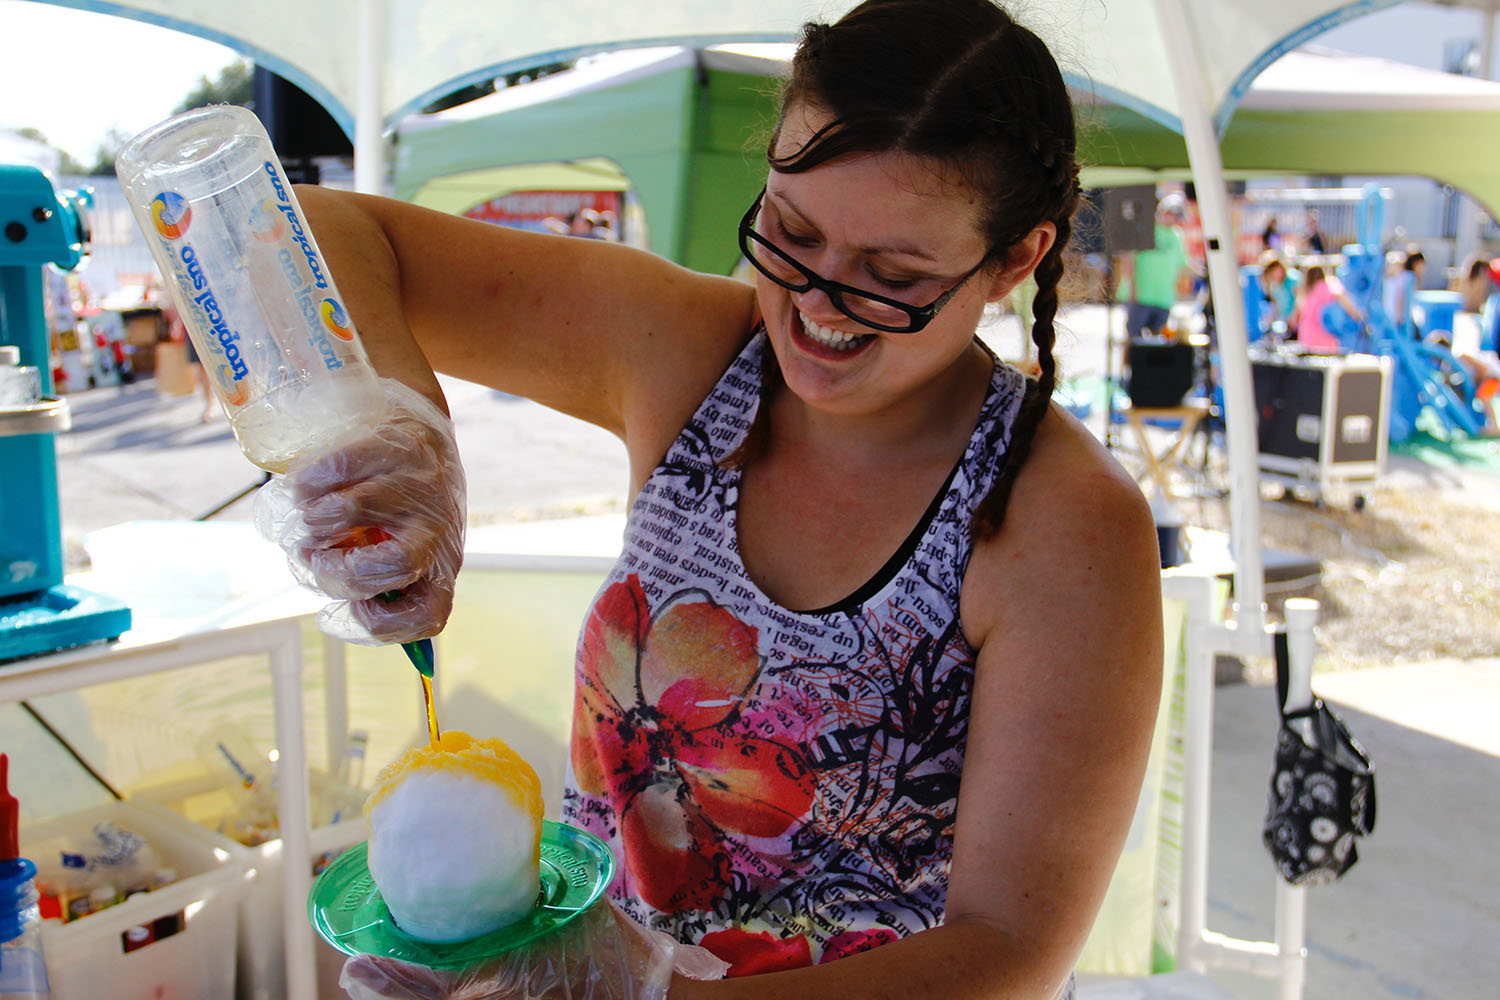 Leanne Ward, 29, pours mango-flavored syrup on a snow cone on this hot December day. (Photo by Lauren Gandy/WUFT News)